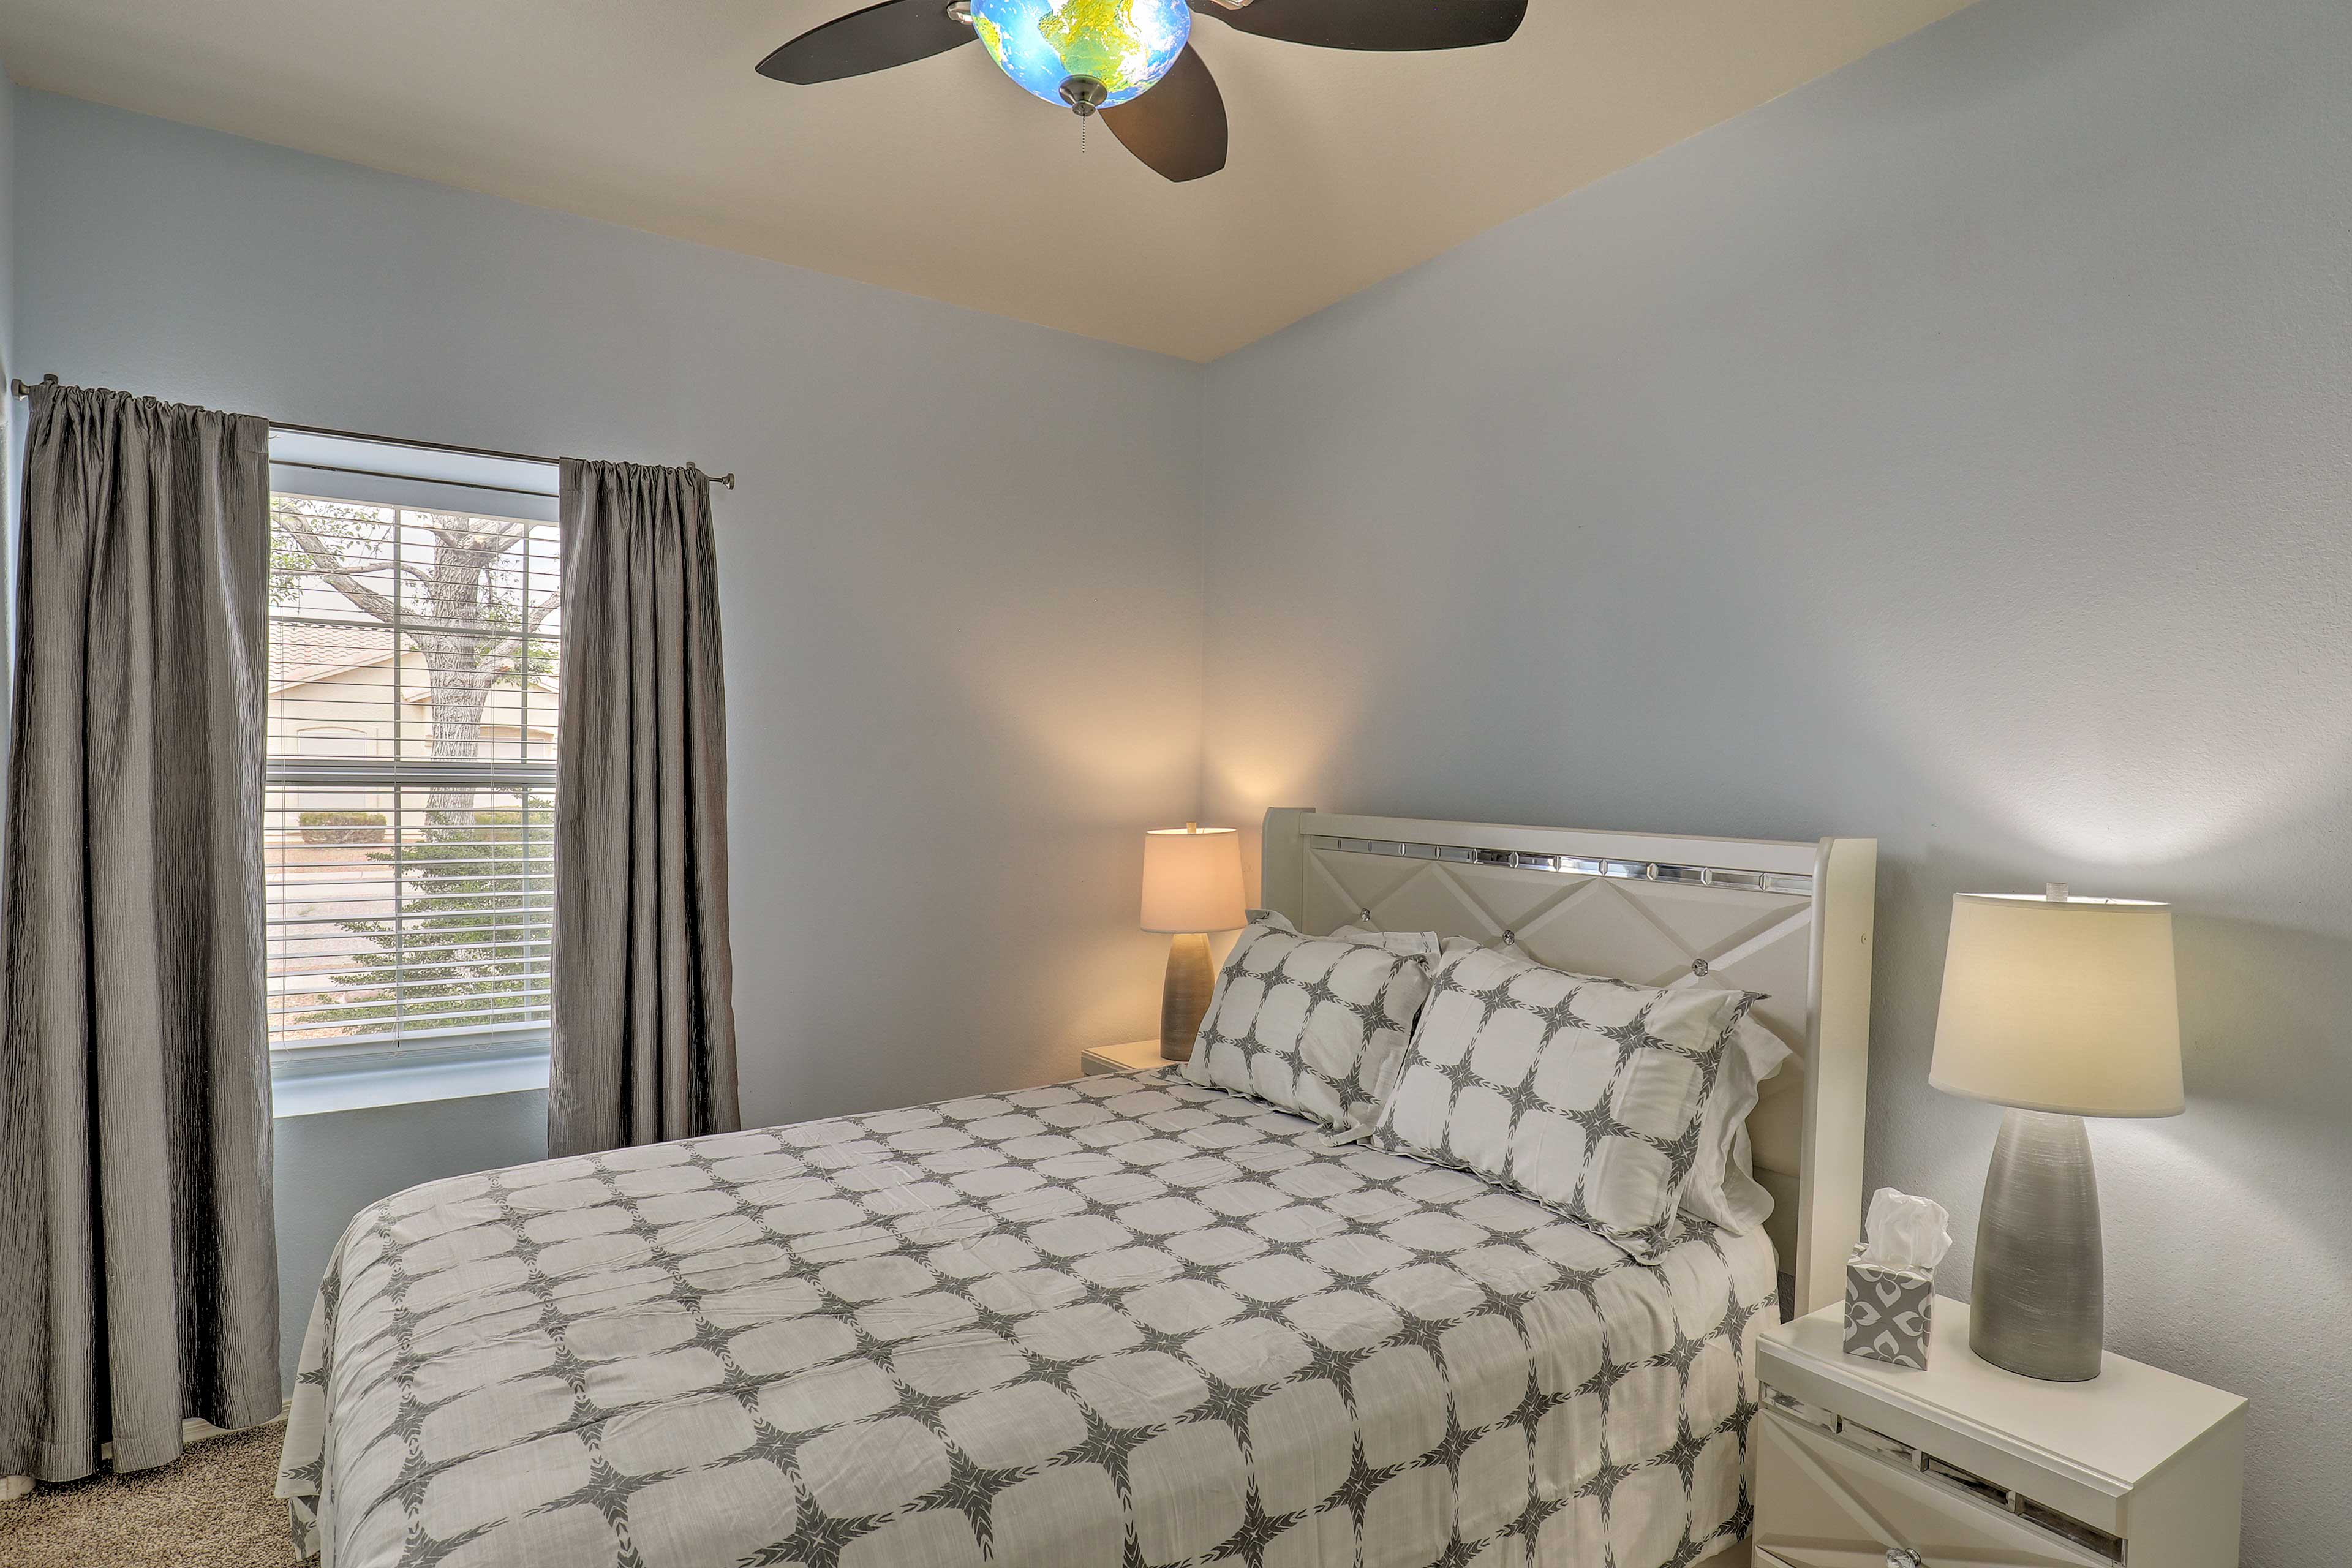 Admire the globe light fixture on the fan as you lay in bed.